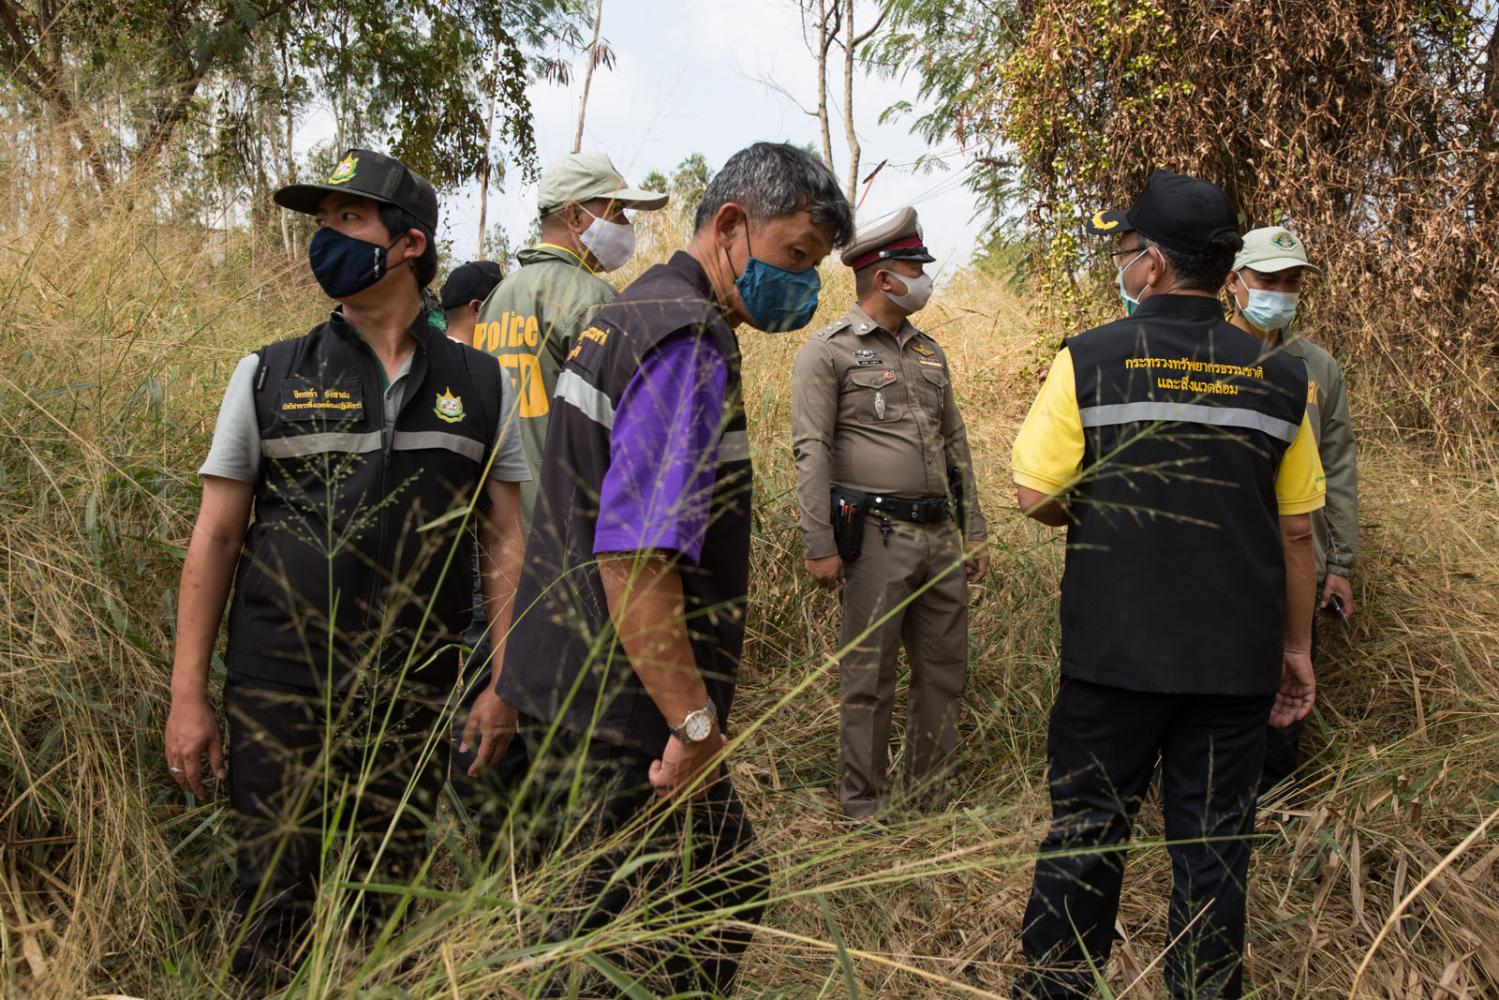 Police and environmental officials inspect an area of land that a recycling plant located nearby has allegedly polluted. Chachoegnsao, Thailand.